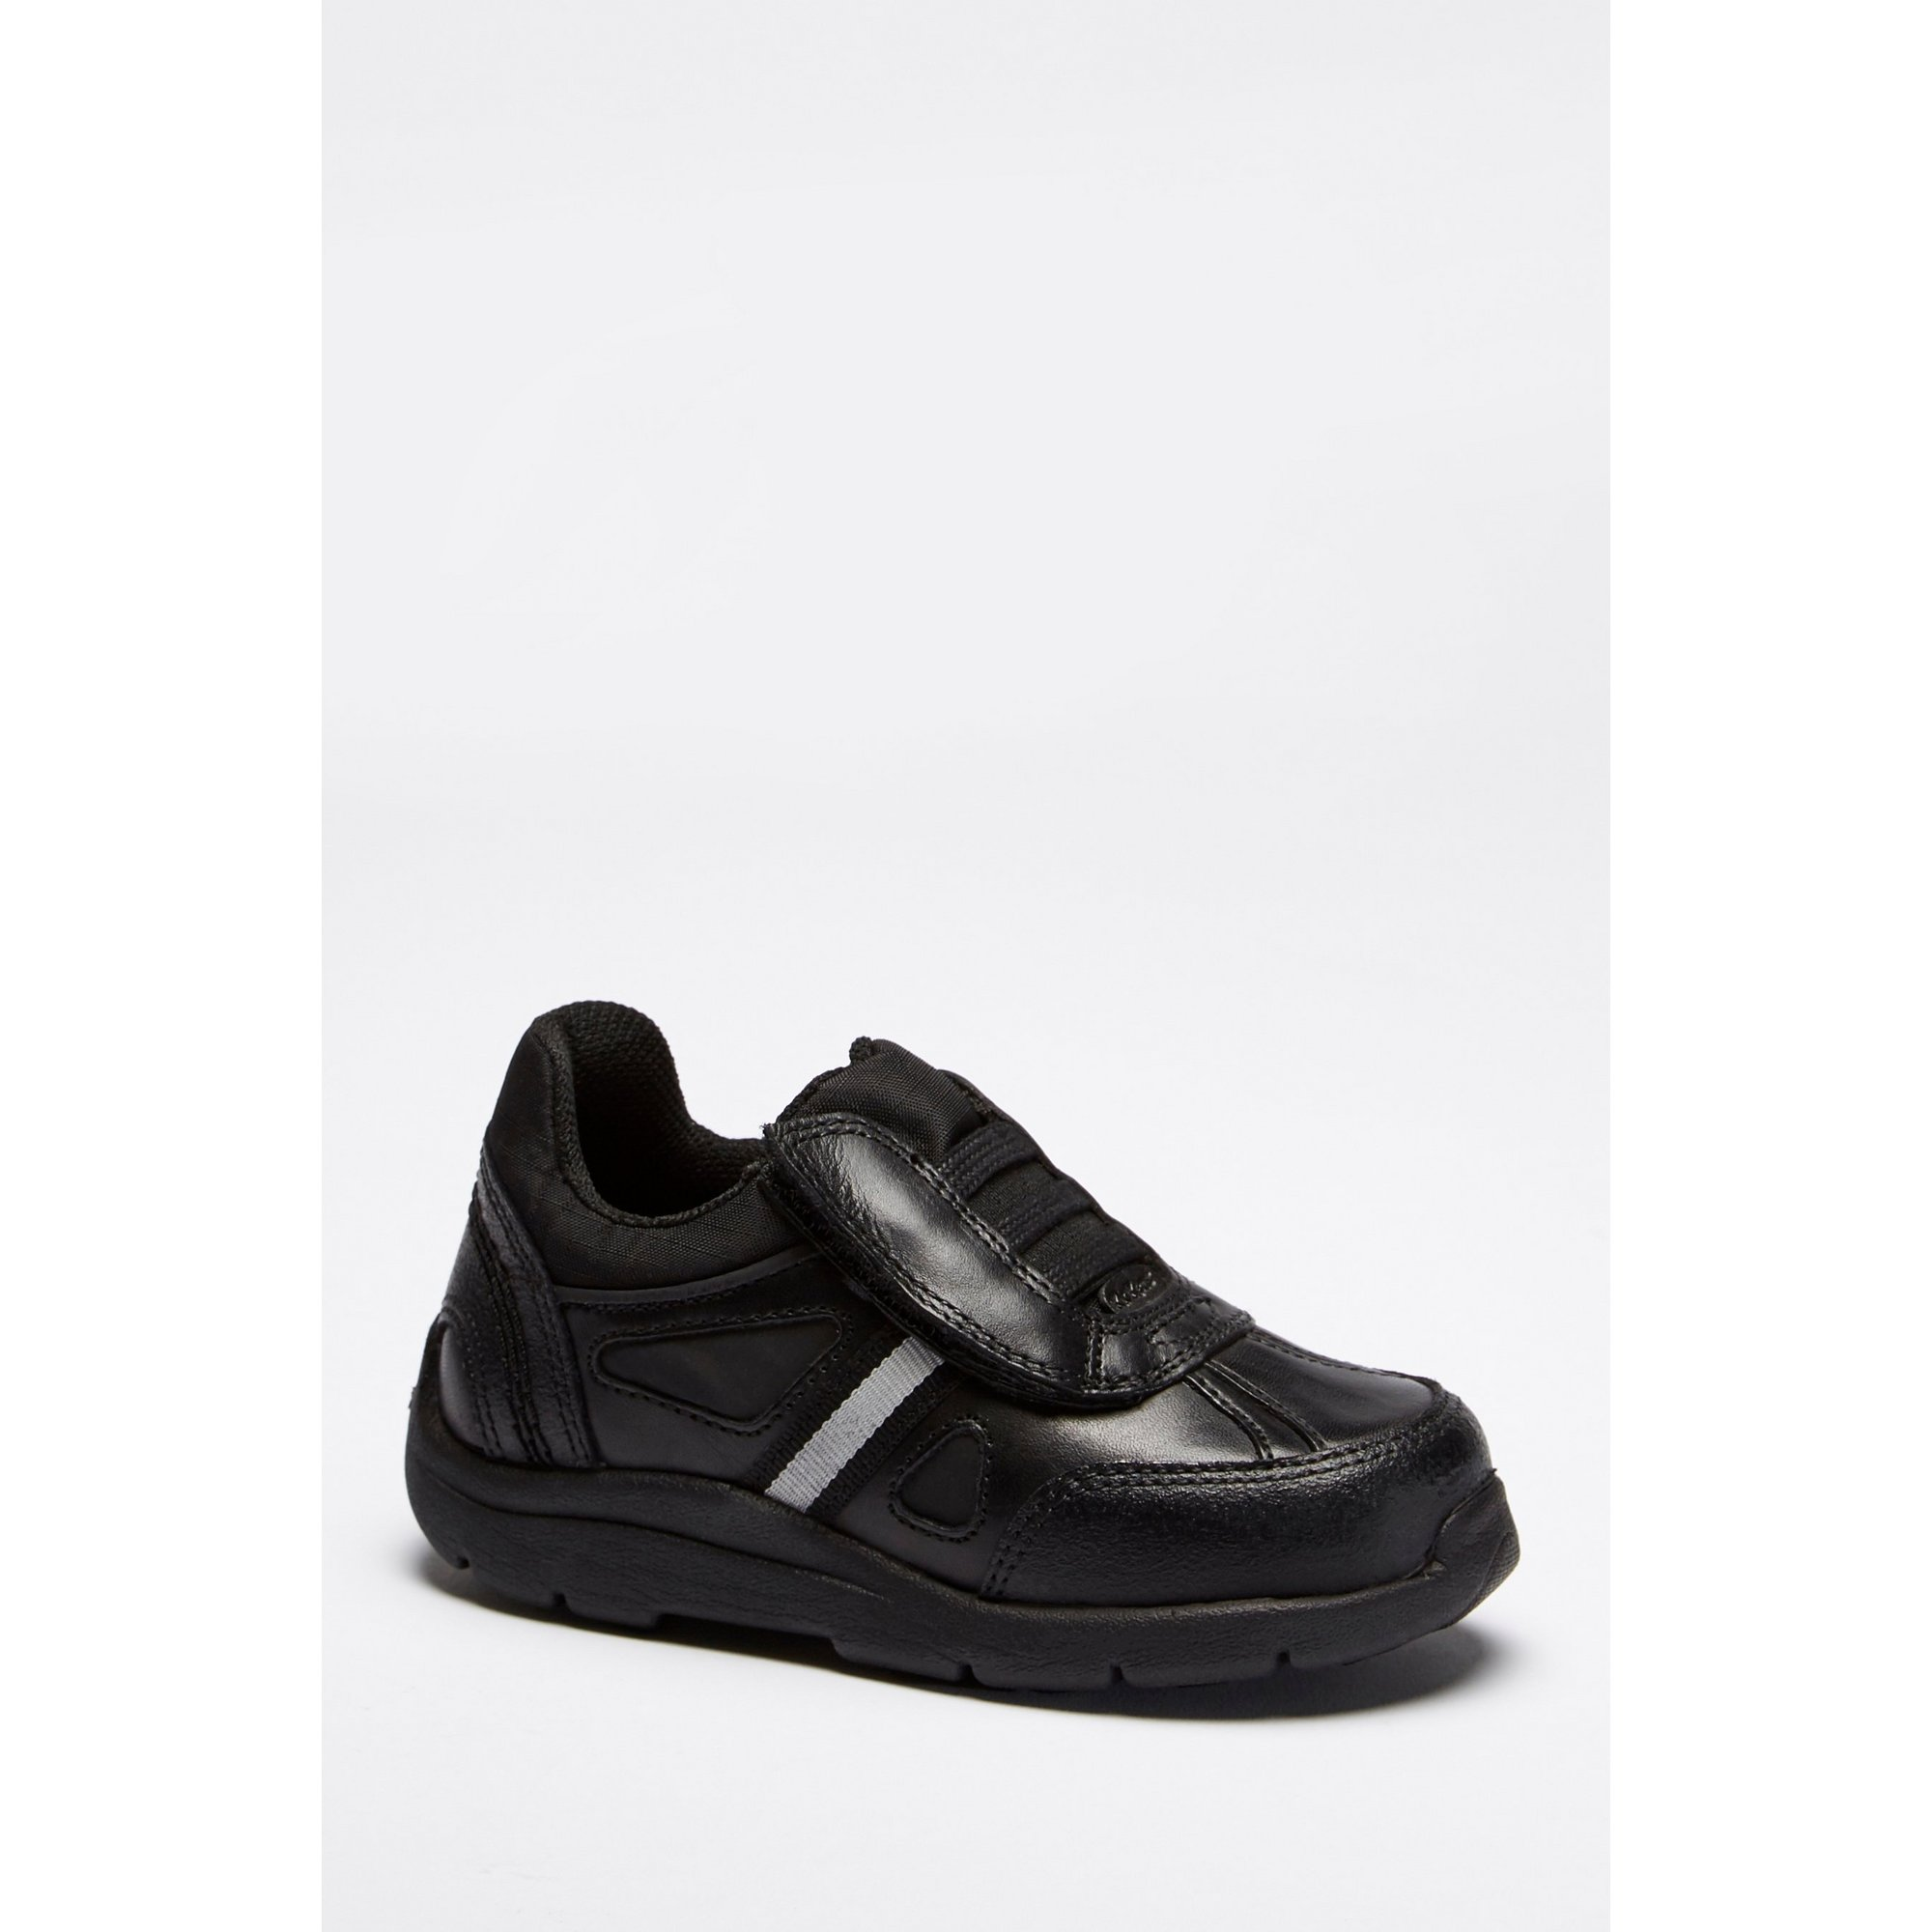 Image of Boys Kickers Moakie Shoes